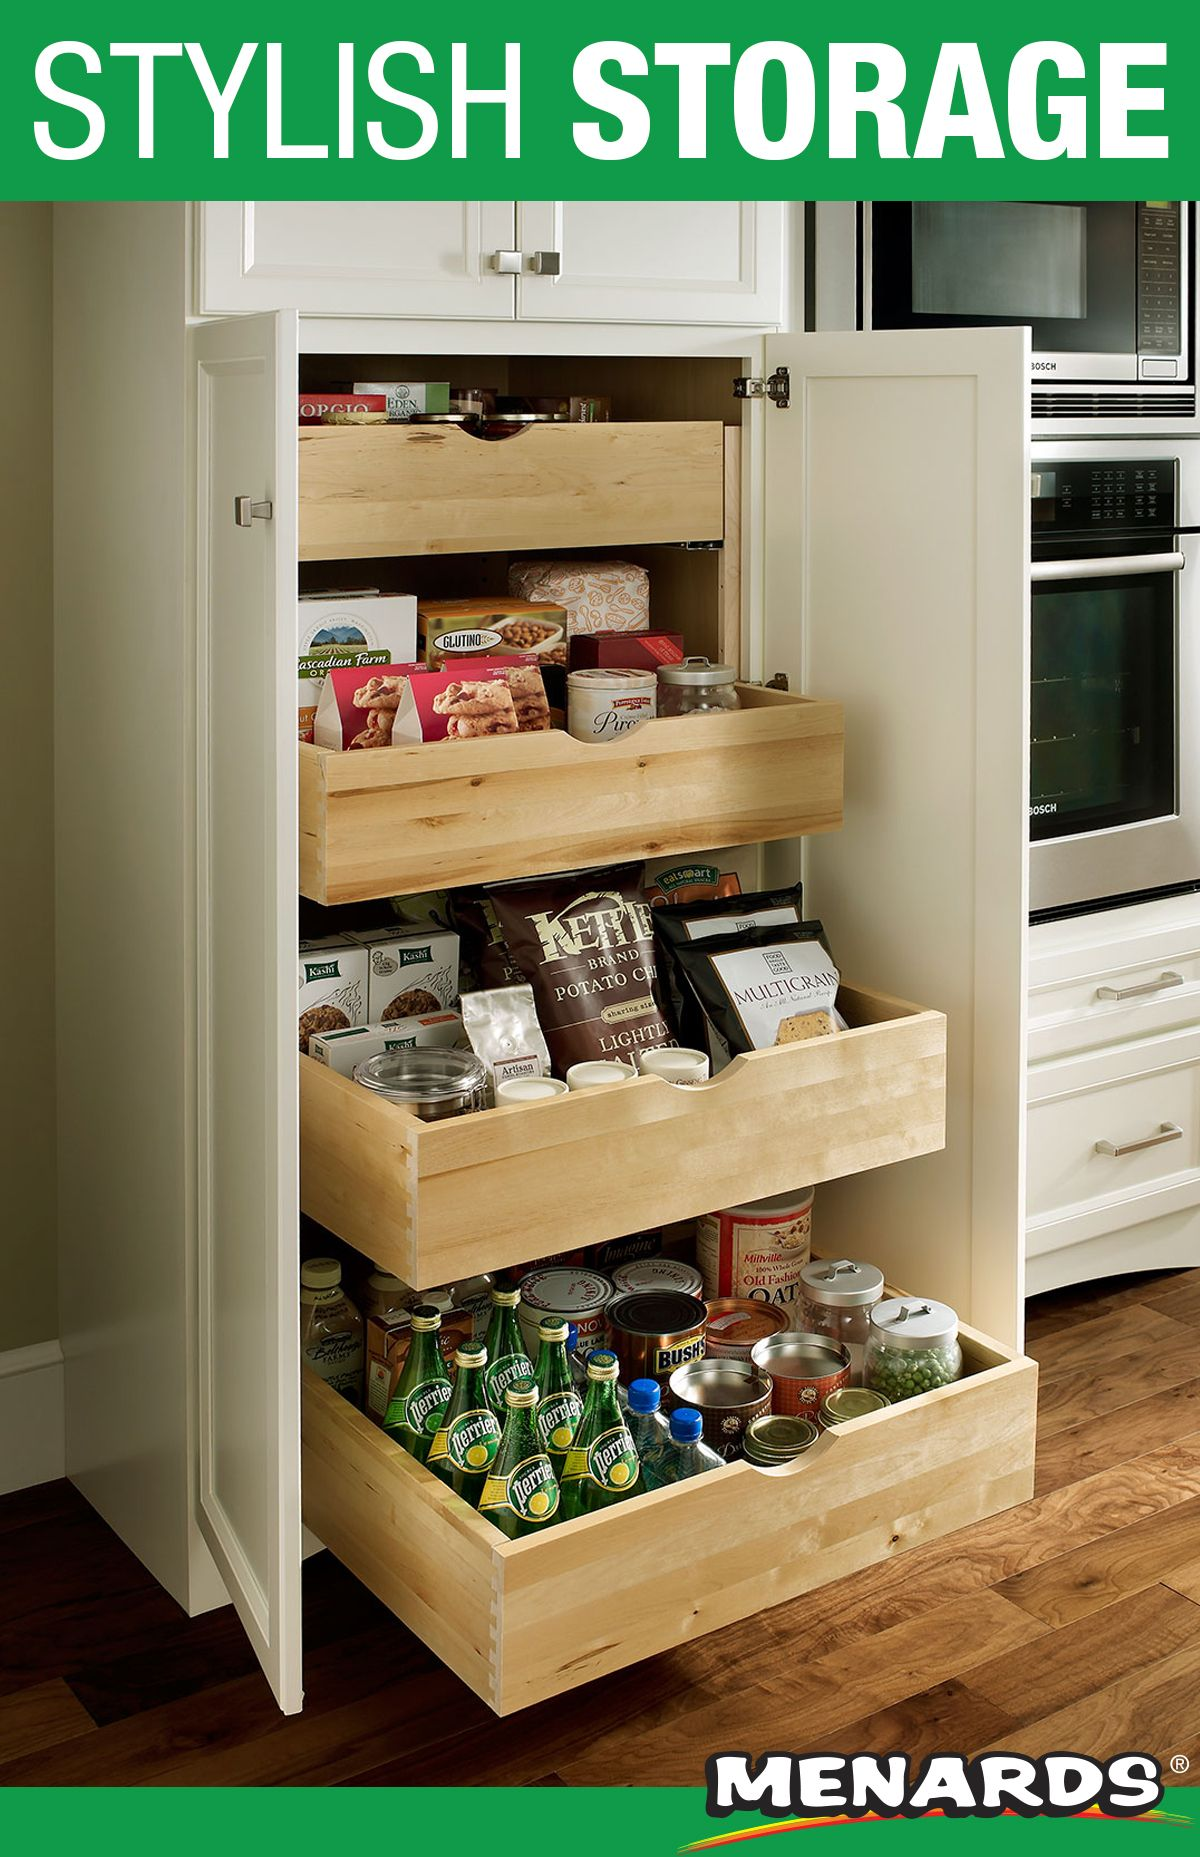 Maximize Your Pantry Storage With Medallion Cabinetry These Deep Roll Out Trays Pull Out Effortle Menards Kitchen Menards Kitchen Cabinets Medallion Cabinets